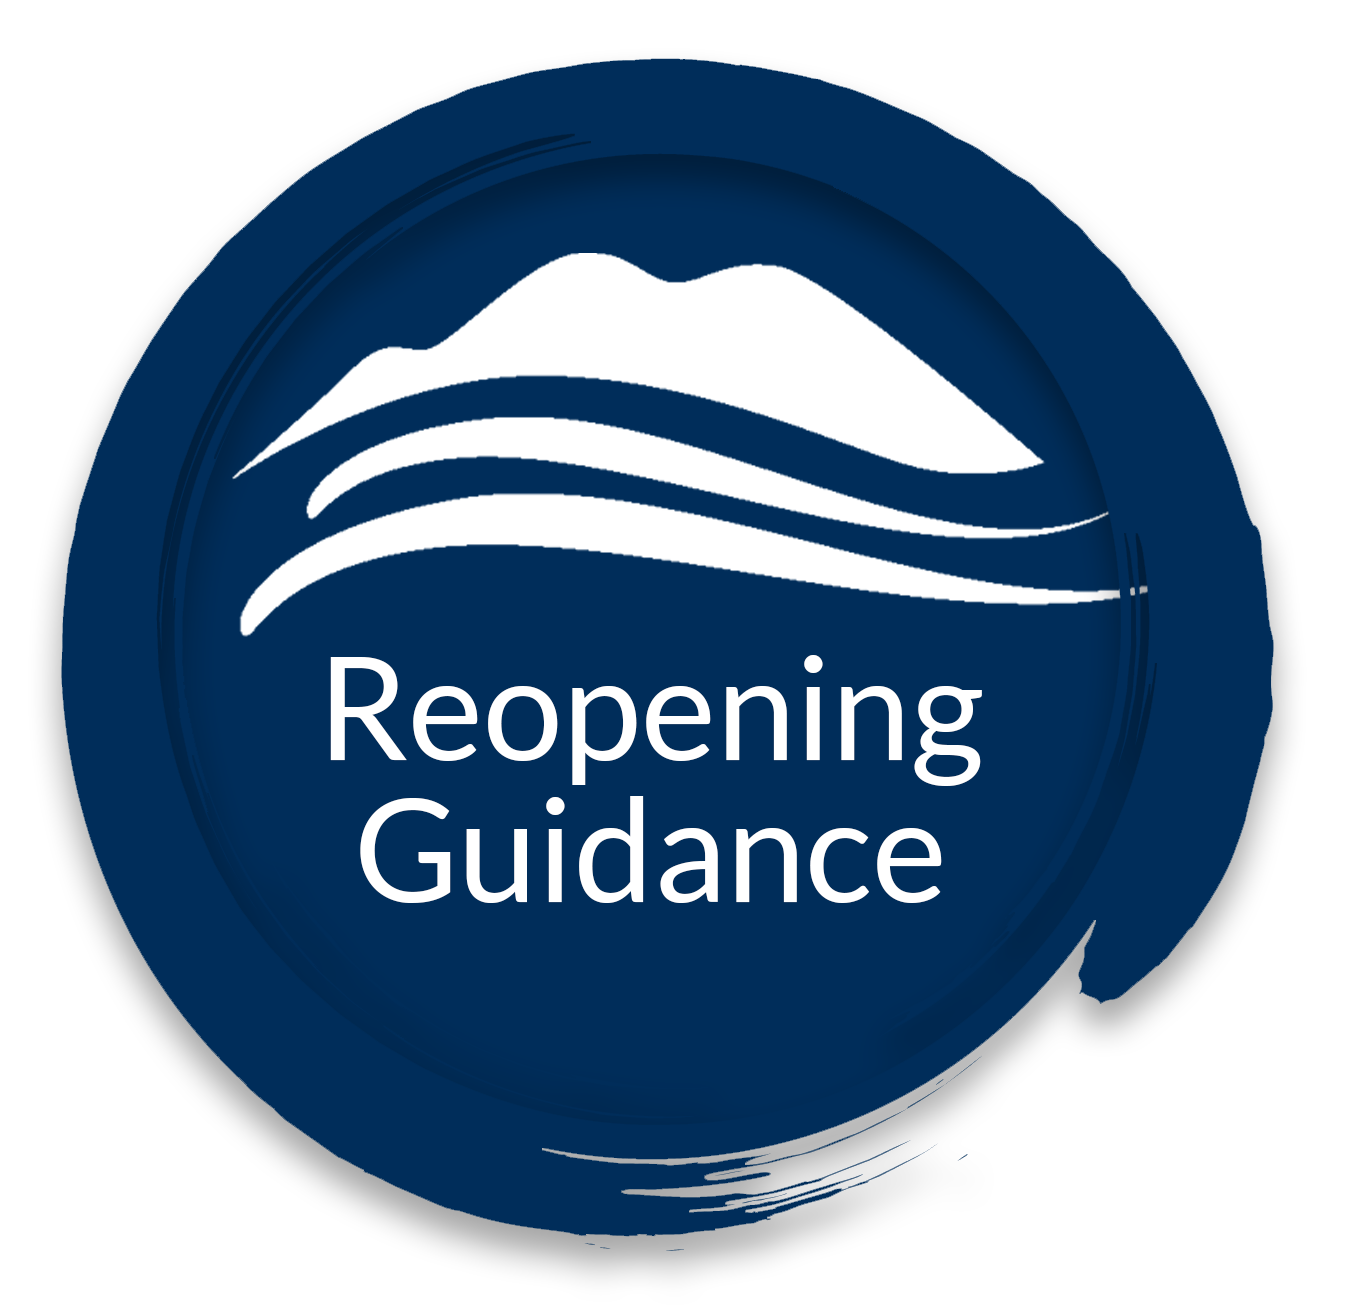 Reopening Guidance button